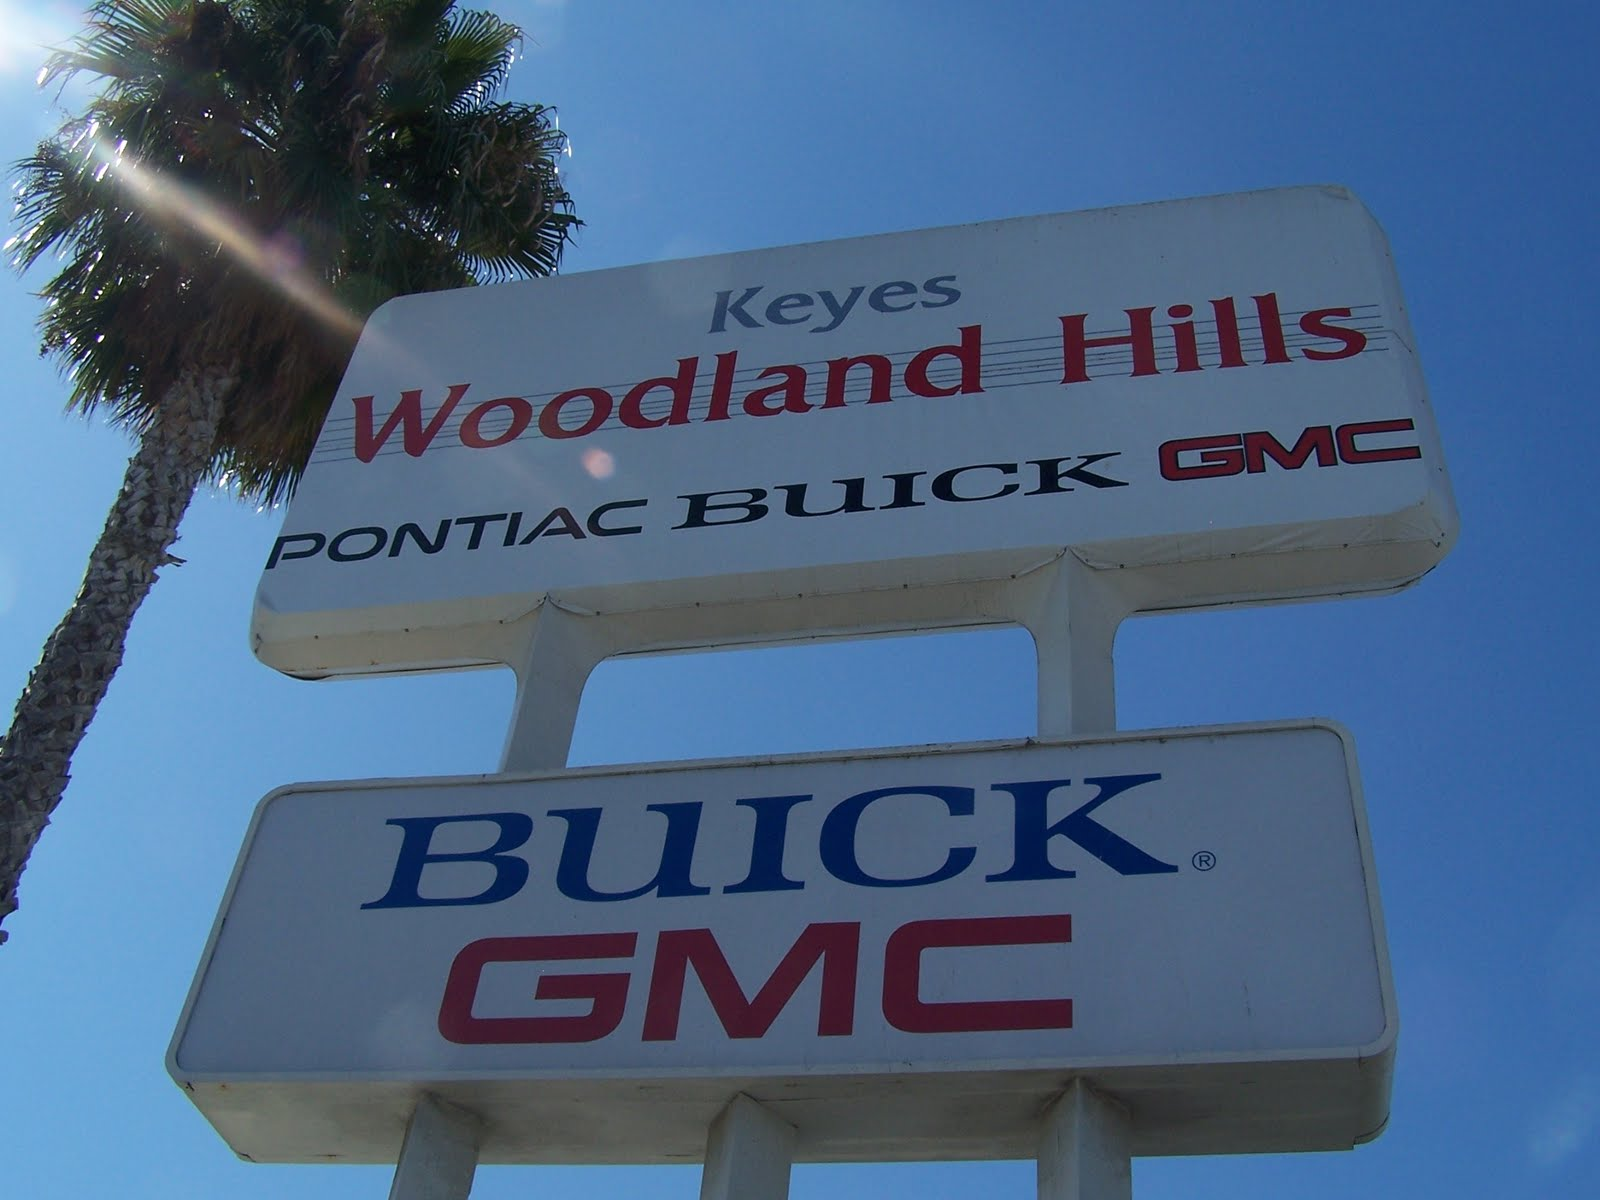 At keyes woodland hills buick gmc cadilalc we take our community involvement seriously we hope that every little gesture to show support for law